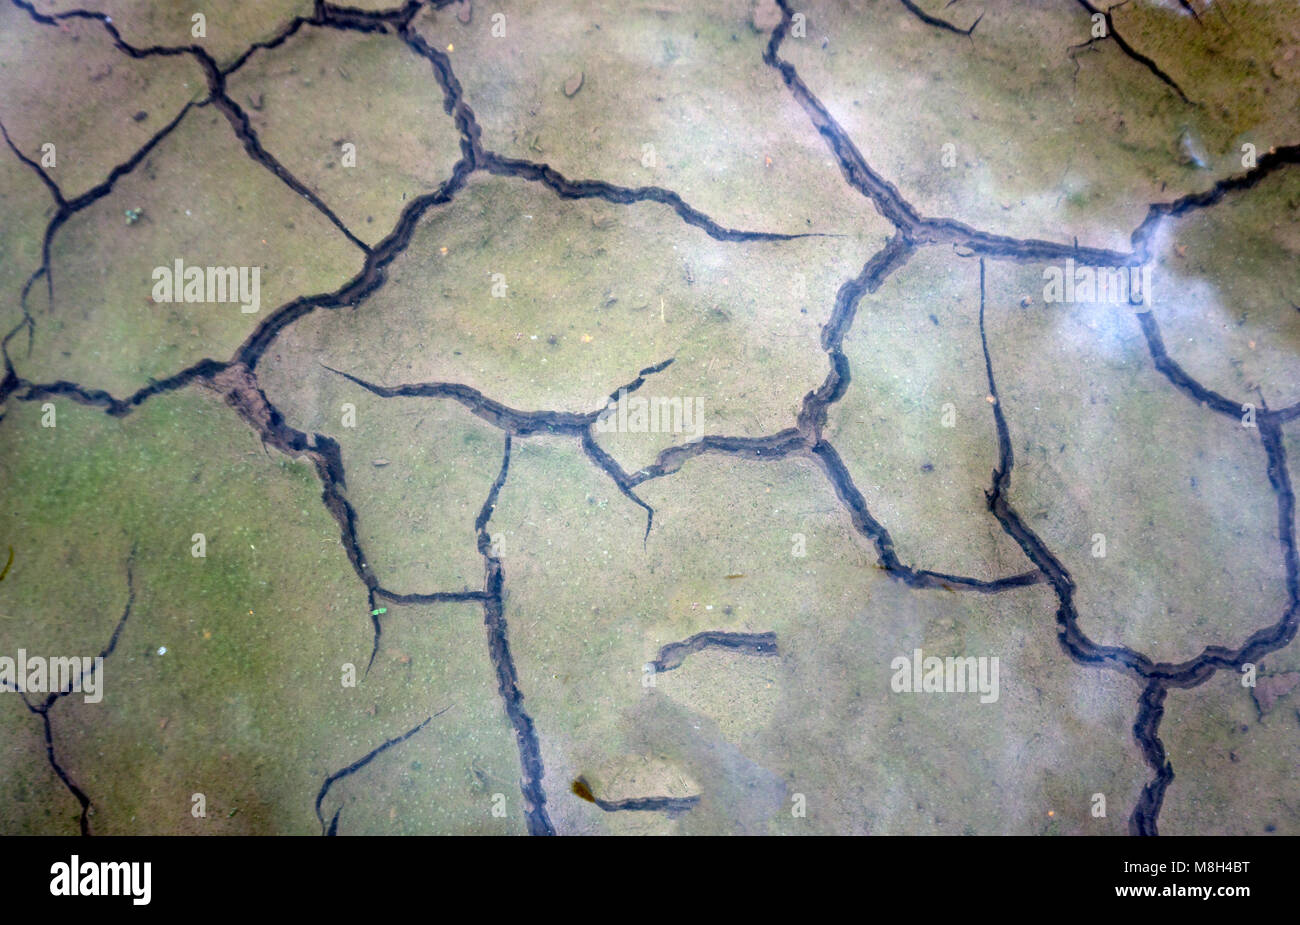 Dry, cracked earth, the top covered with water - Stock Image